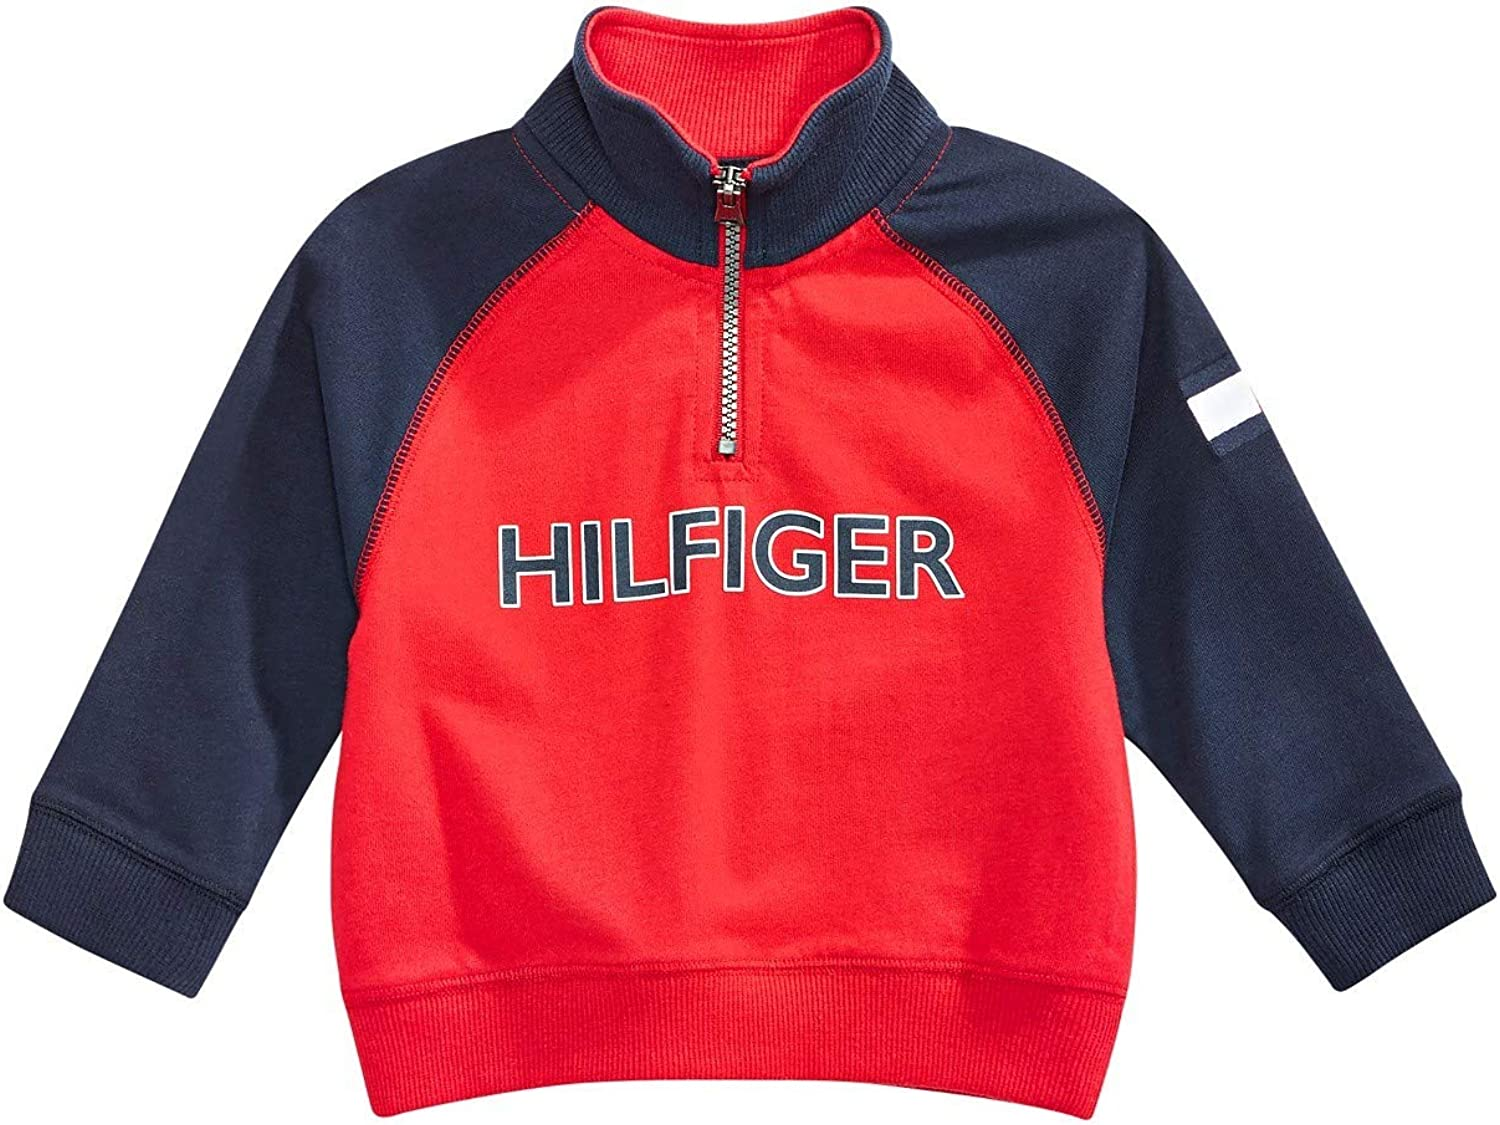 Tommy Hilfiger SWEATER ベビー・ボーイズ